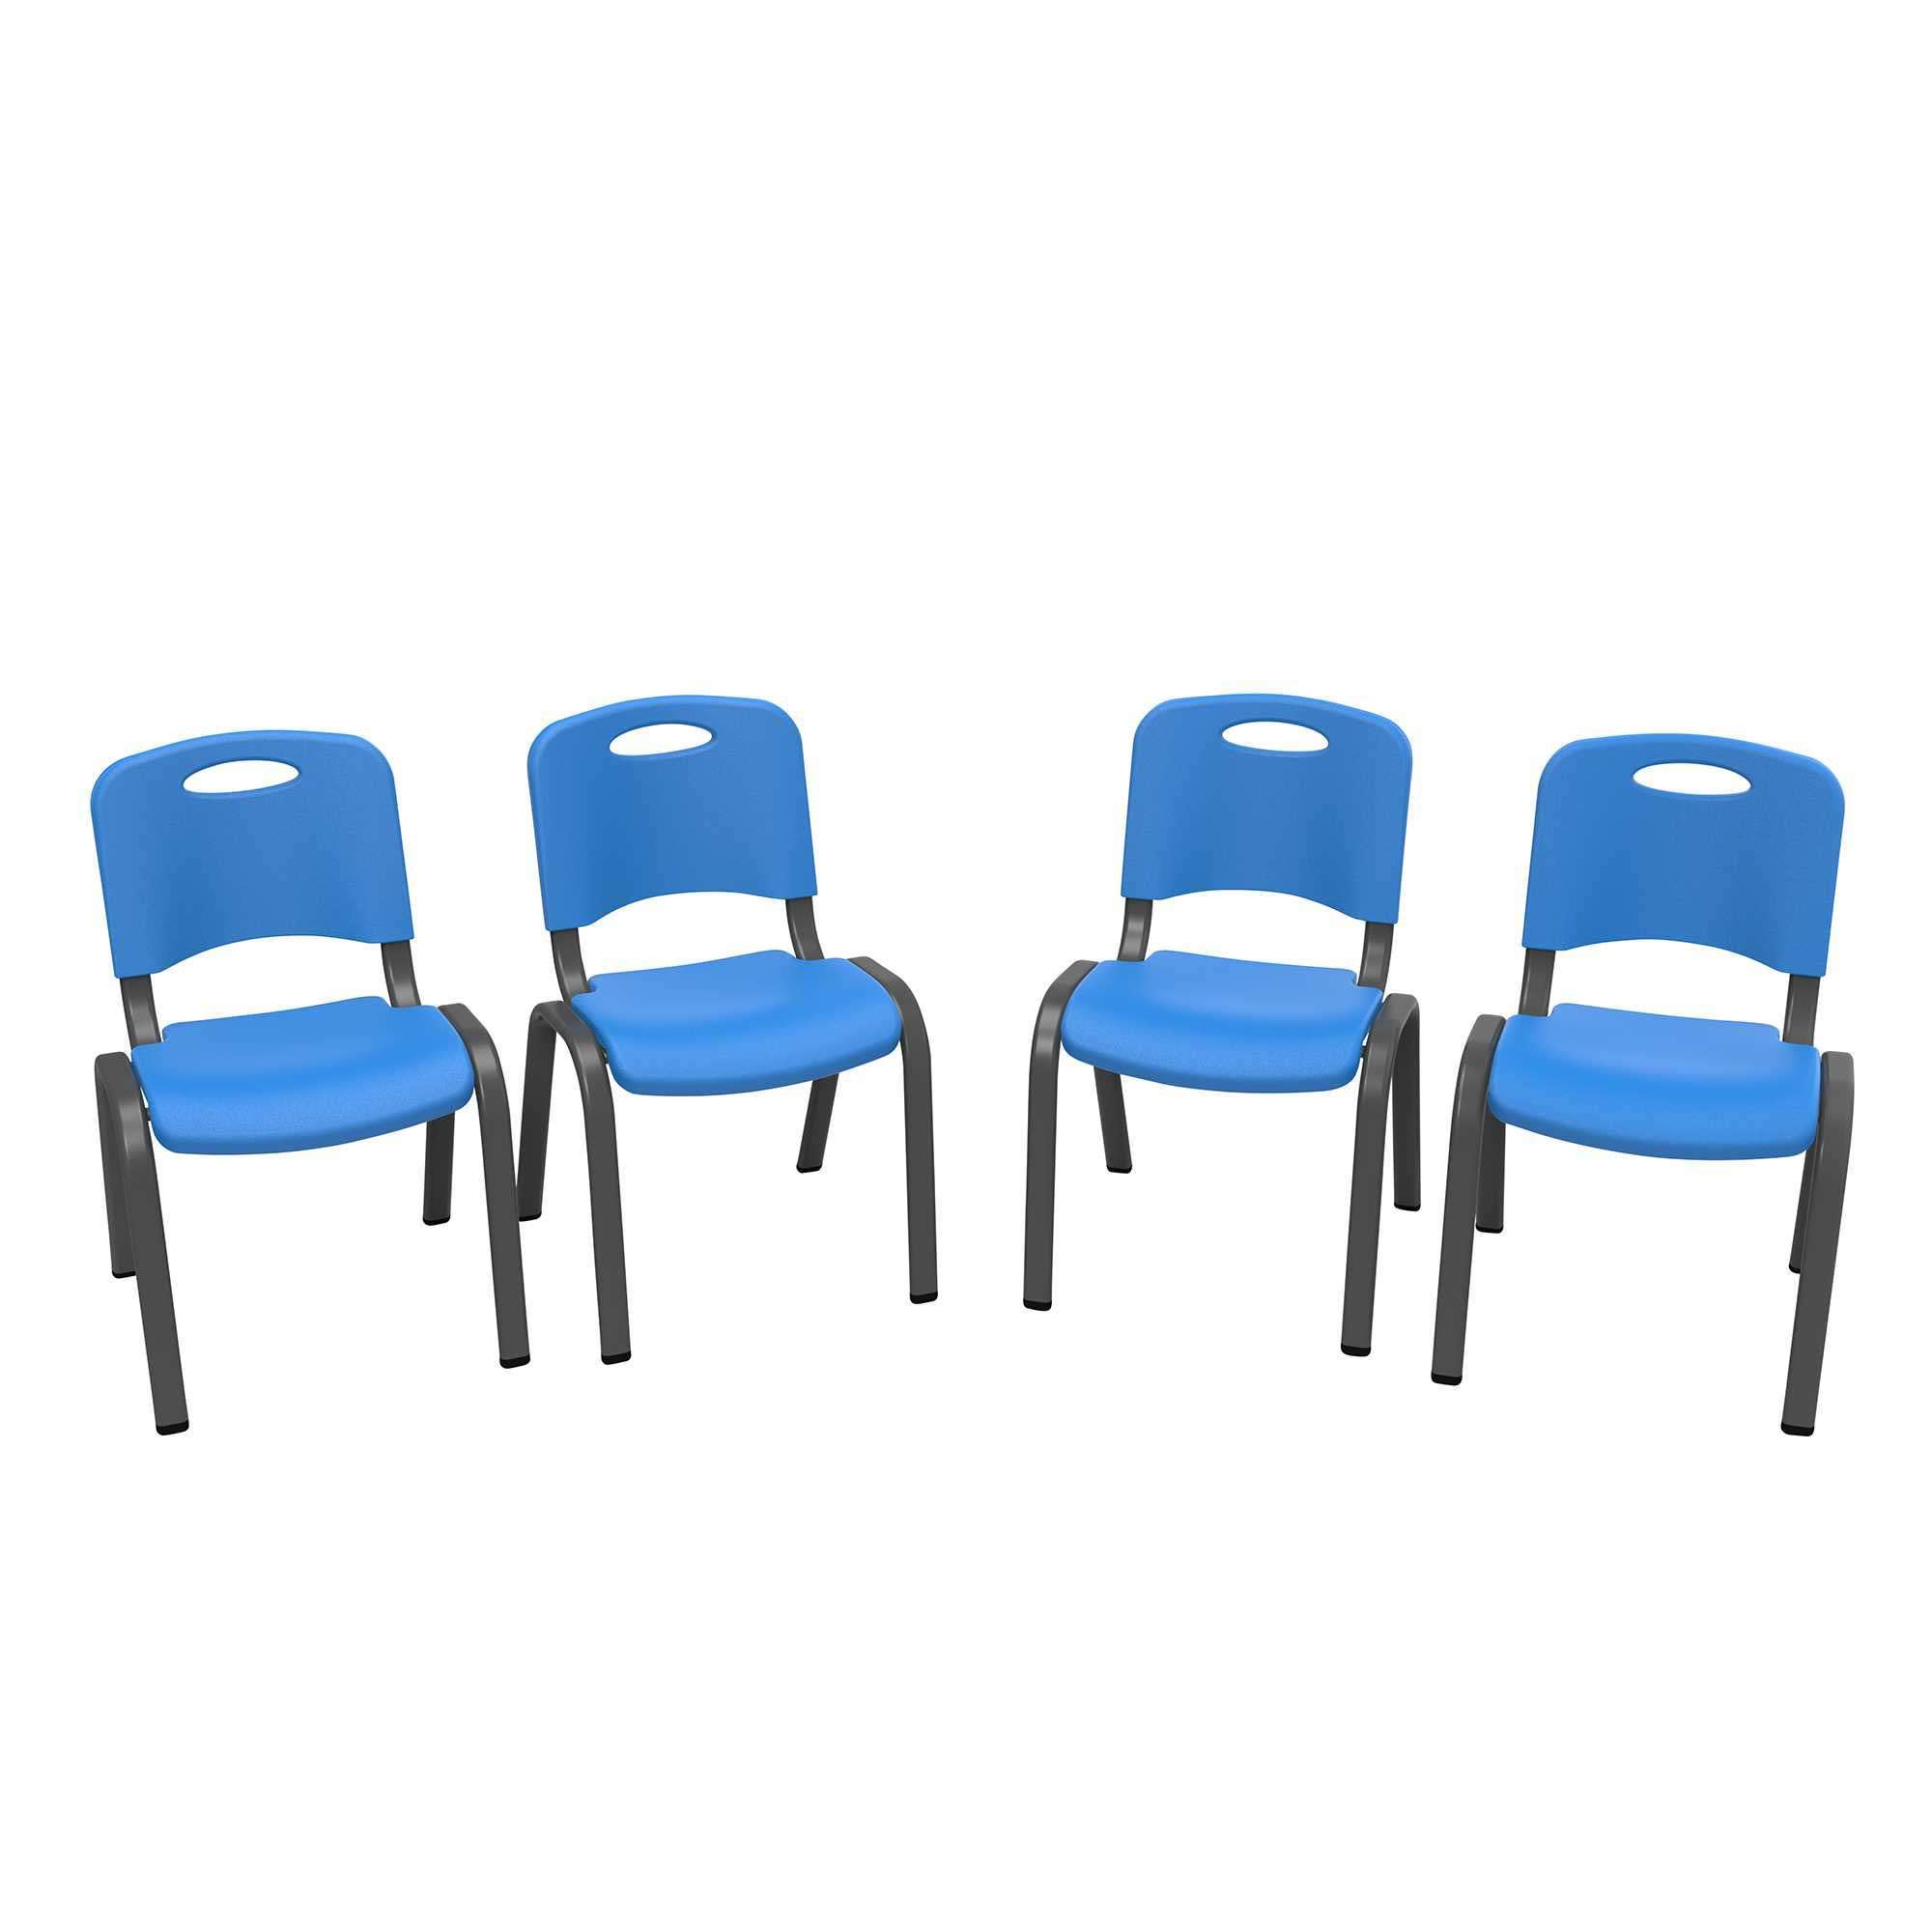 65b4db3a7a5 Lifetime Childrens Stacking Chairs 80533 4-Pack Dragonfly Blue Item ...